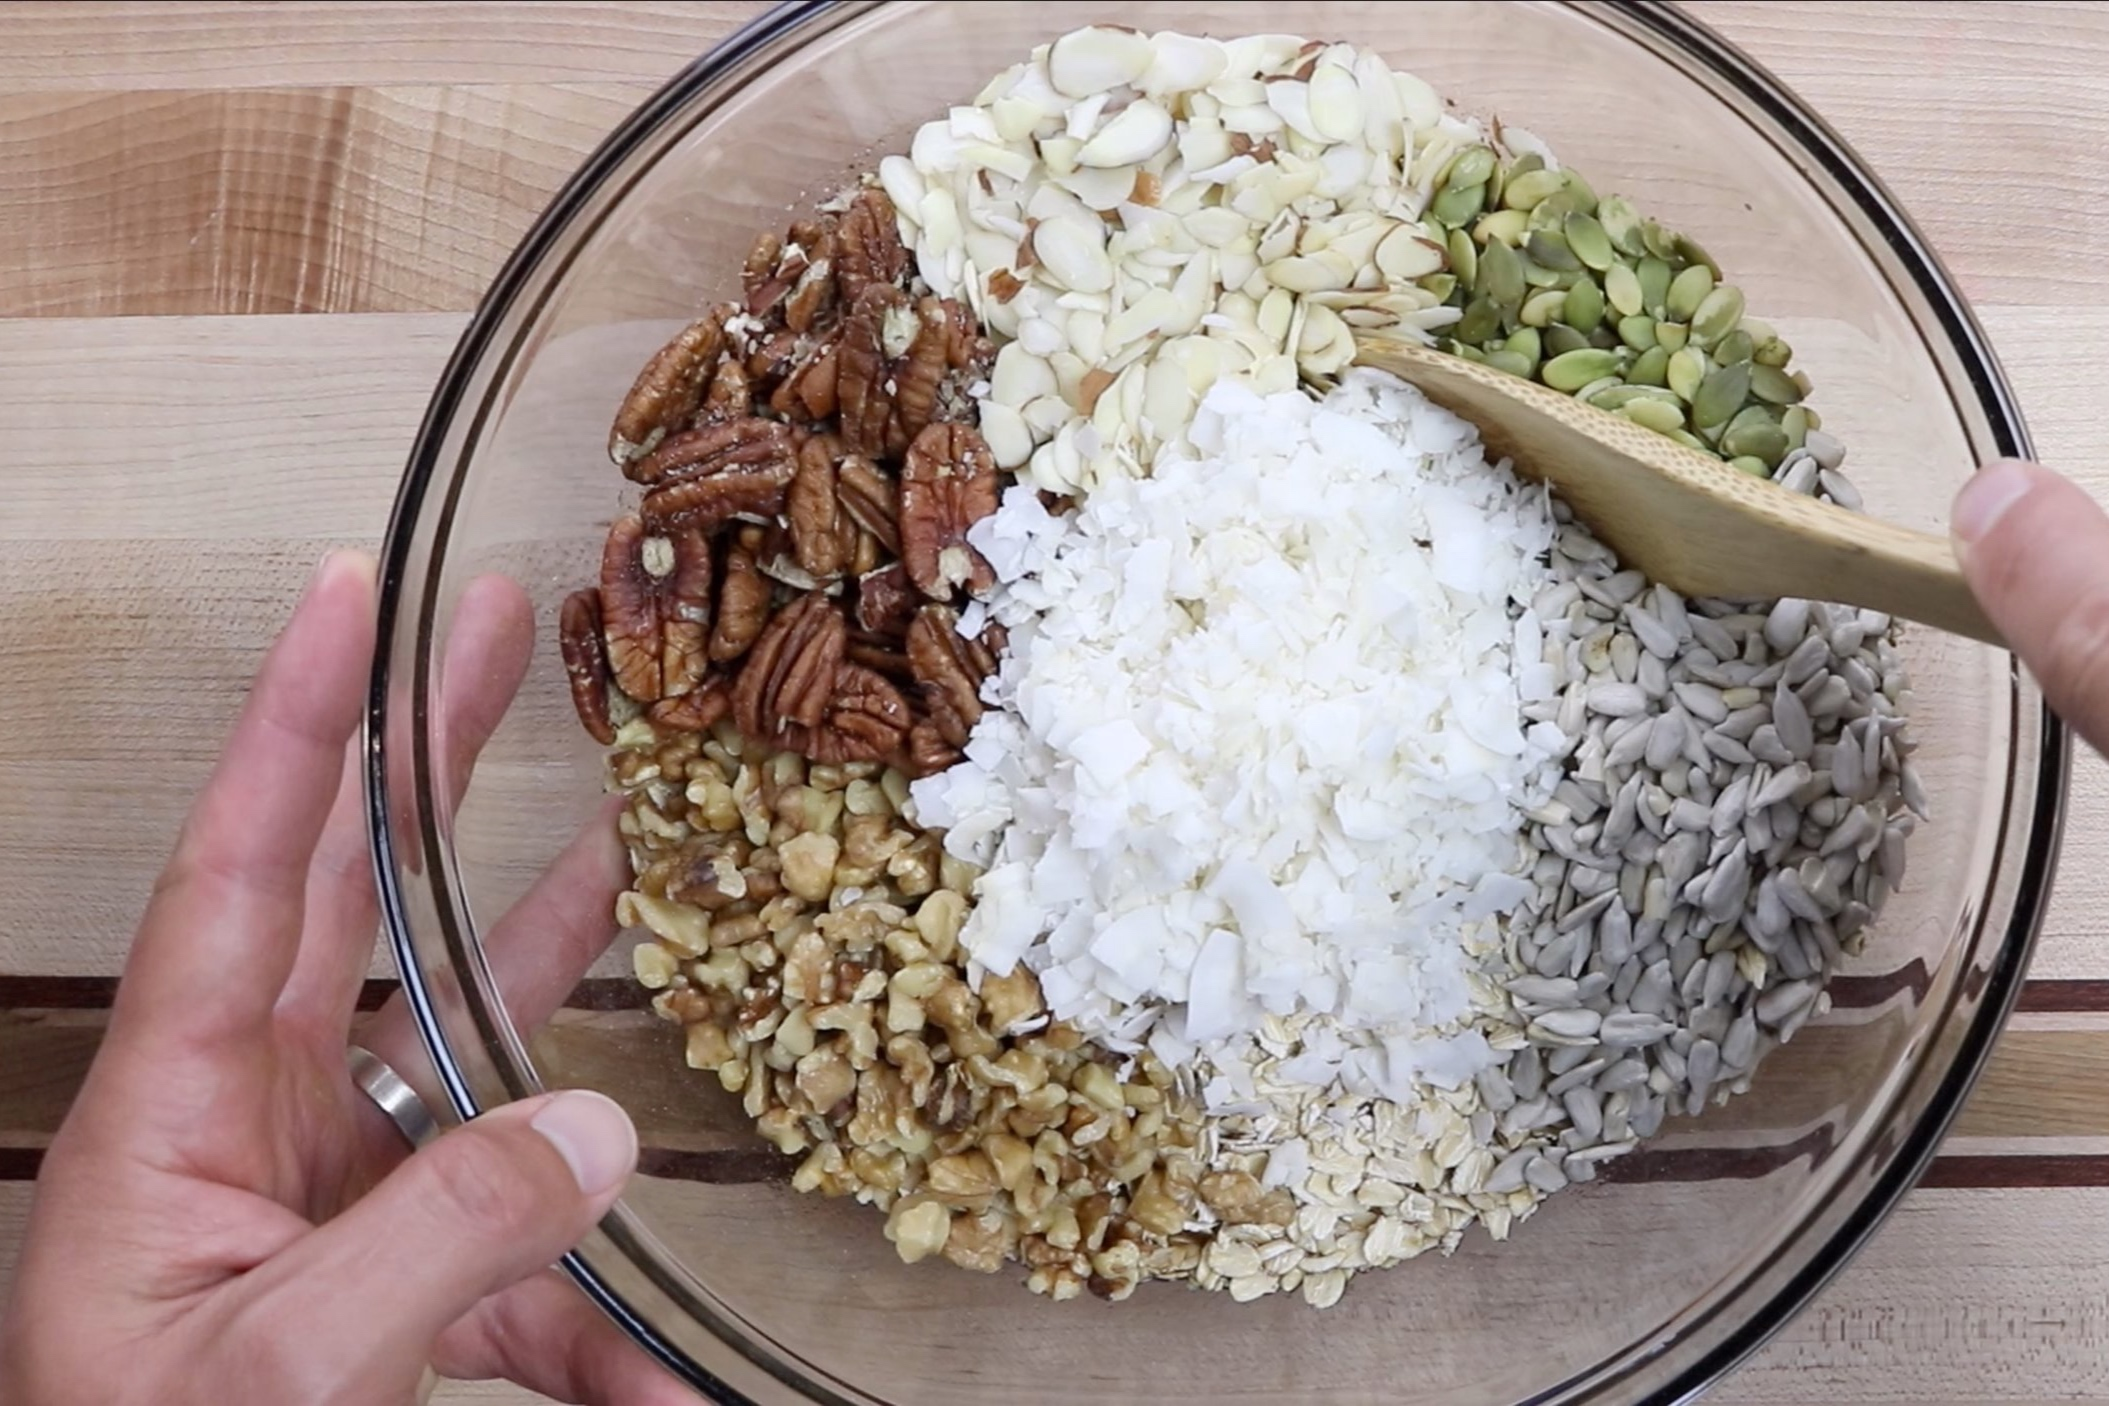 3. Add the oats, walnuts, pecans, almonds, pepitas, sunflower seeds and coconut flakes. Fold mixture until all pieces are lightly coated. -